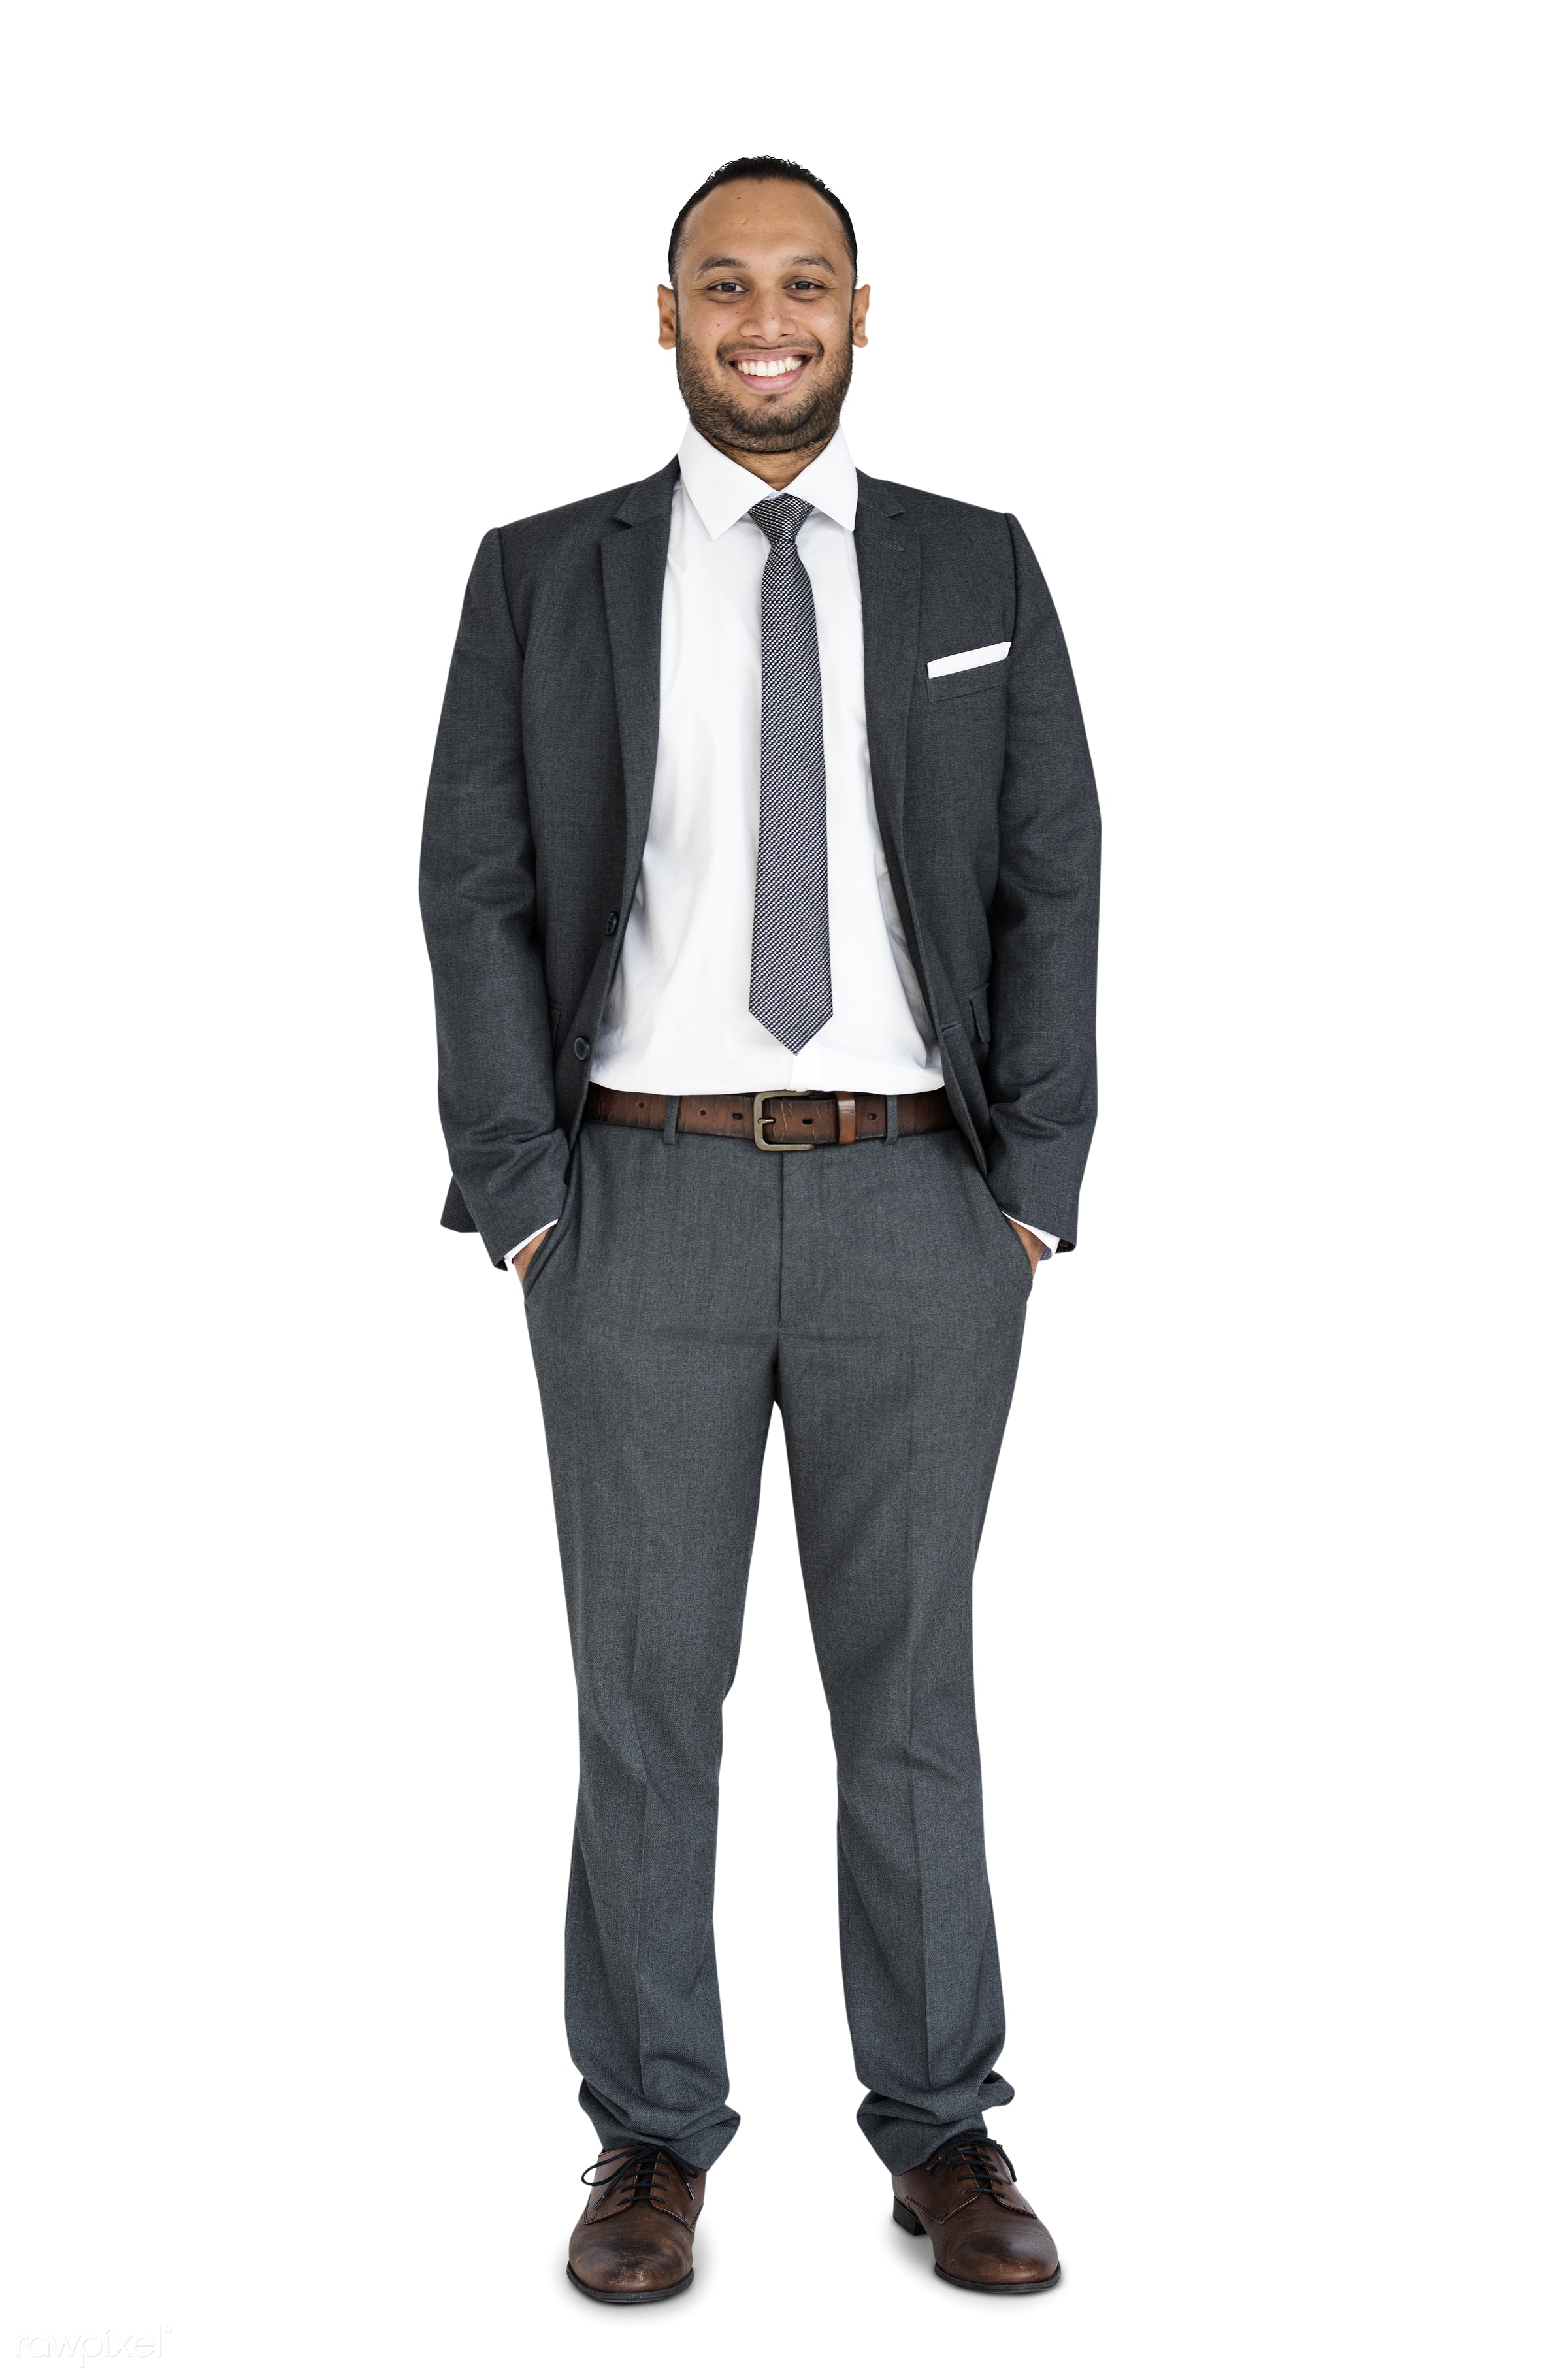 studio, expression, person, business wear, people, business, asian, happy, brainstorm, smile, cheerful, man, smiling, formal...